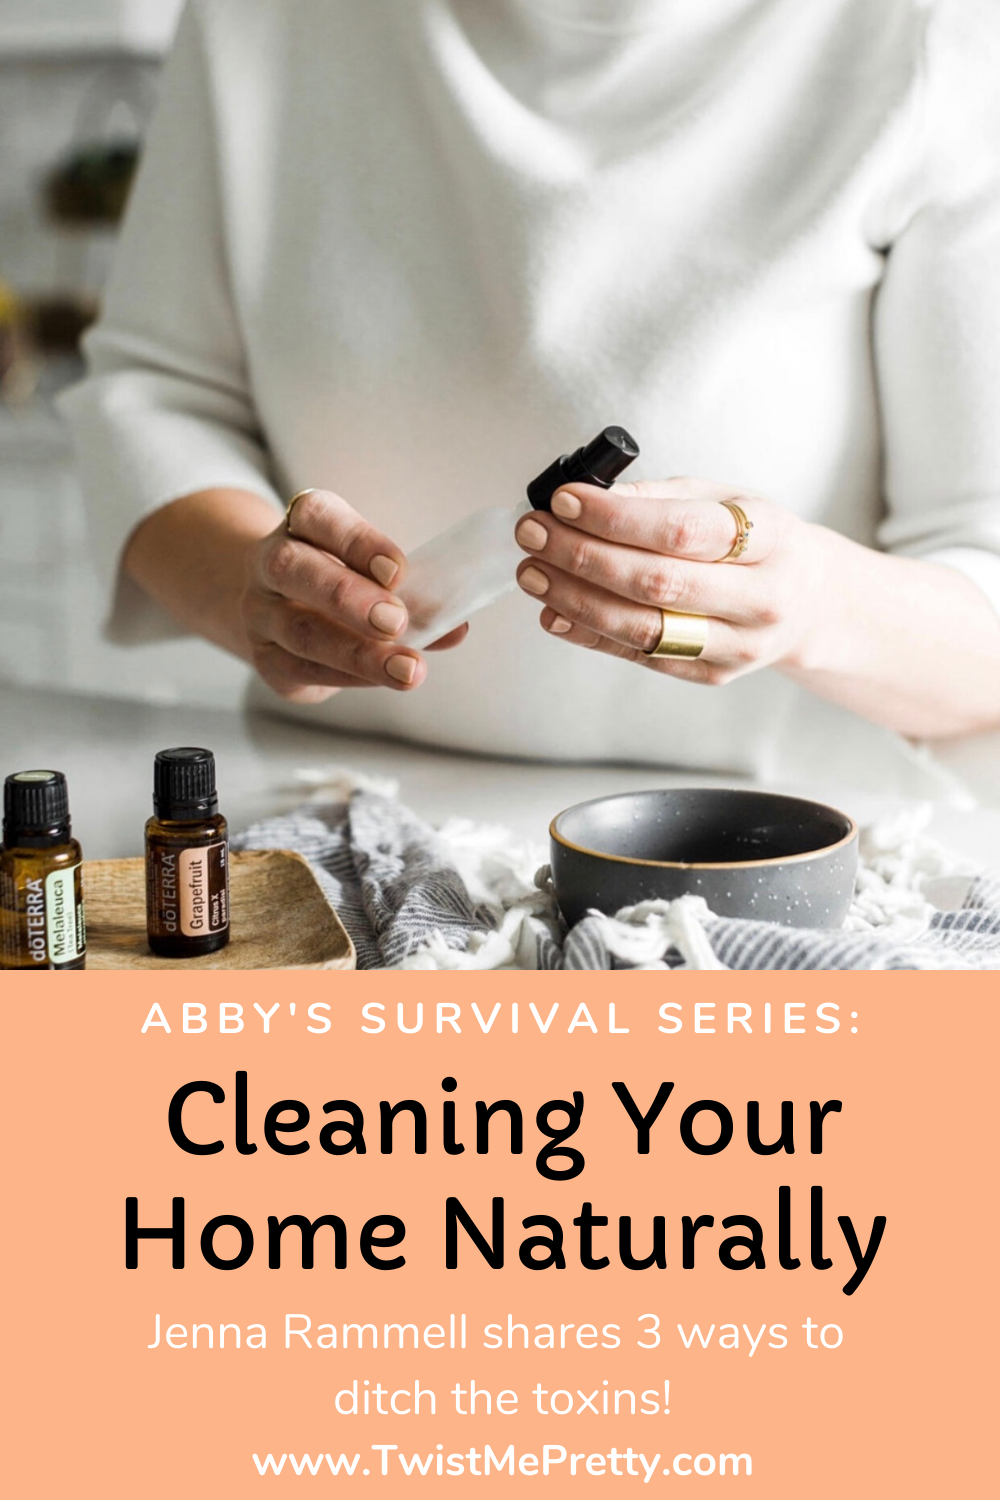 Abby's Survival Series: Cleaning Your Home Naturally. Jenna Rammell shares 3 ways to ditch the toxins. www.TwistMePretty.com